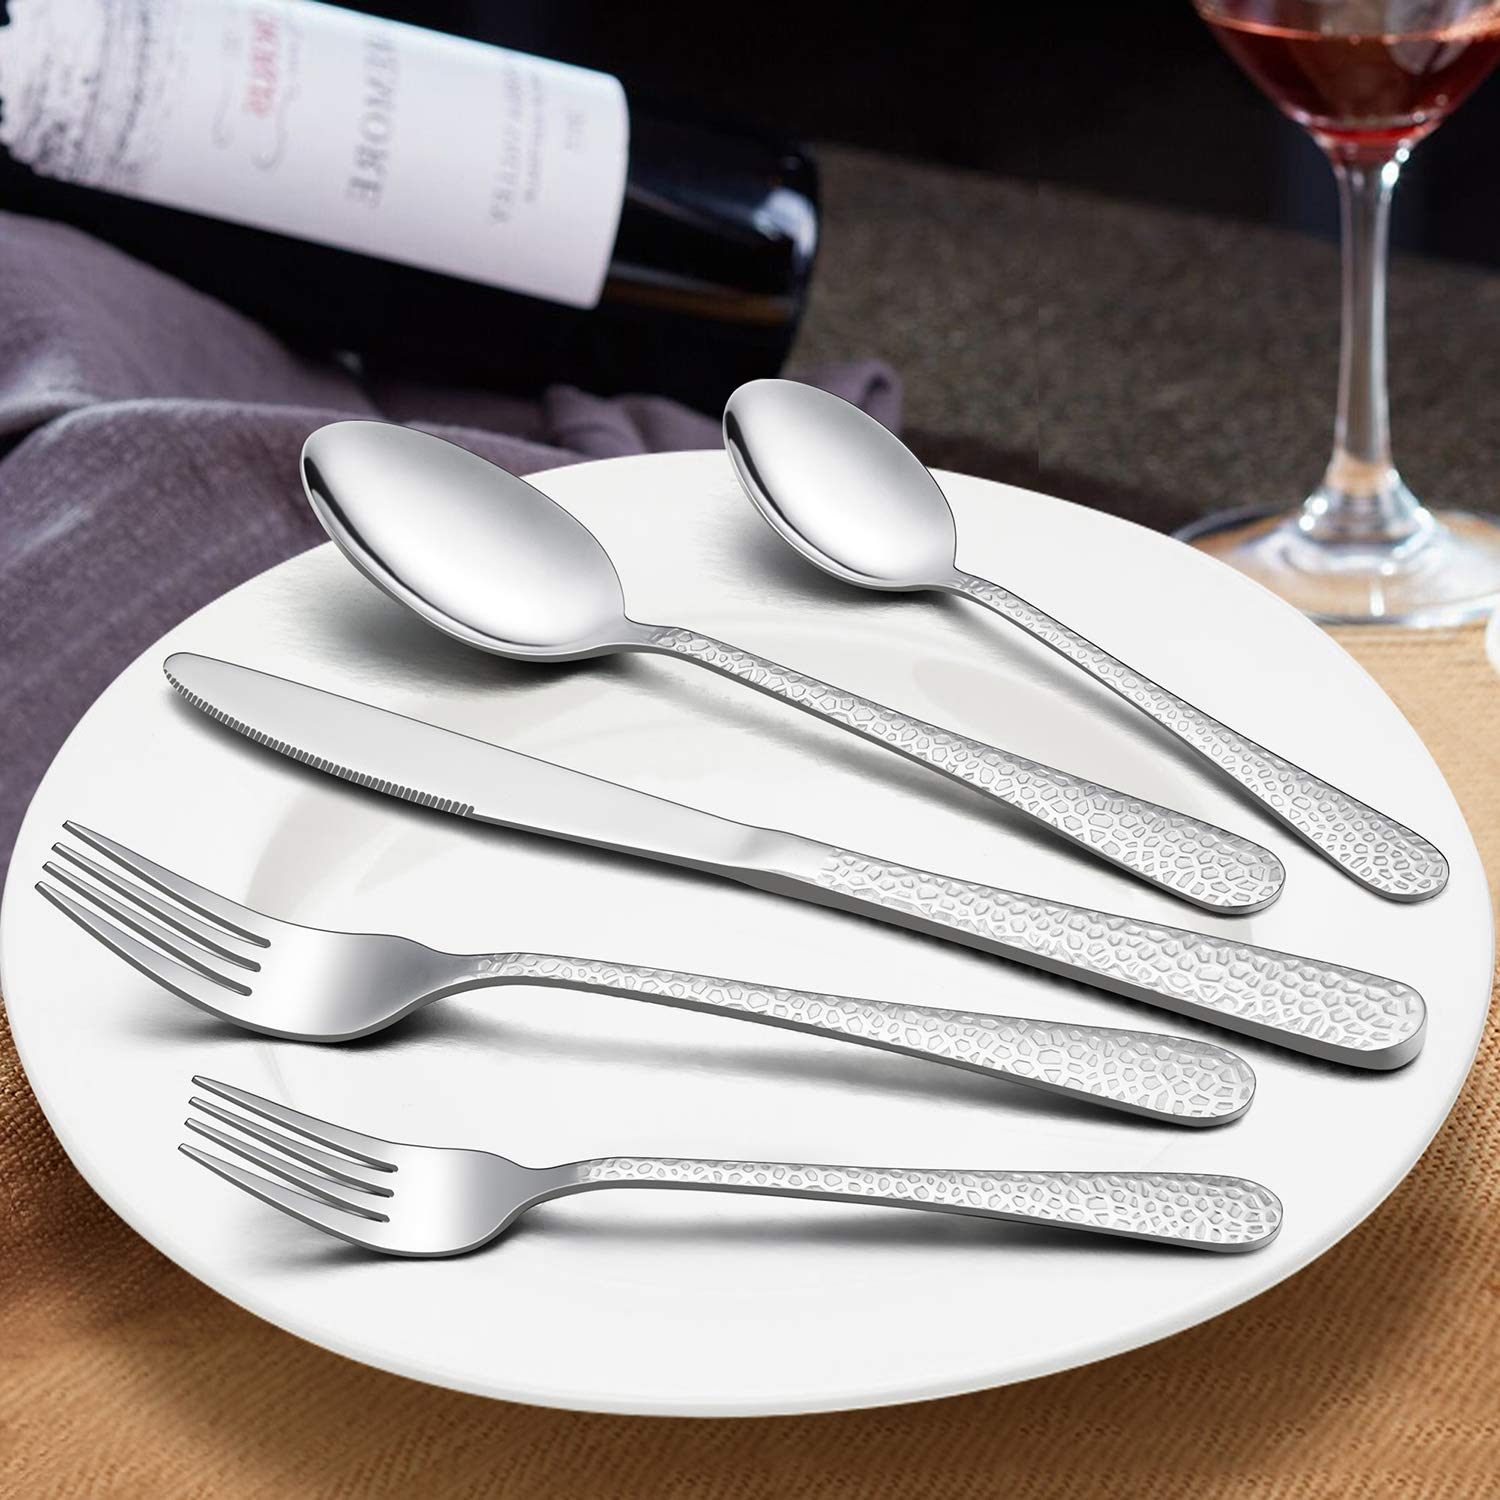 Hammered Silverware Set, LIANYU 40-Piece Stainless Steel Cutlery Flatware Set for 8, Tableware Eating Utensils, Mirror Finish, Dishwasher Safe by LIANYU (Image #3)